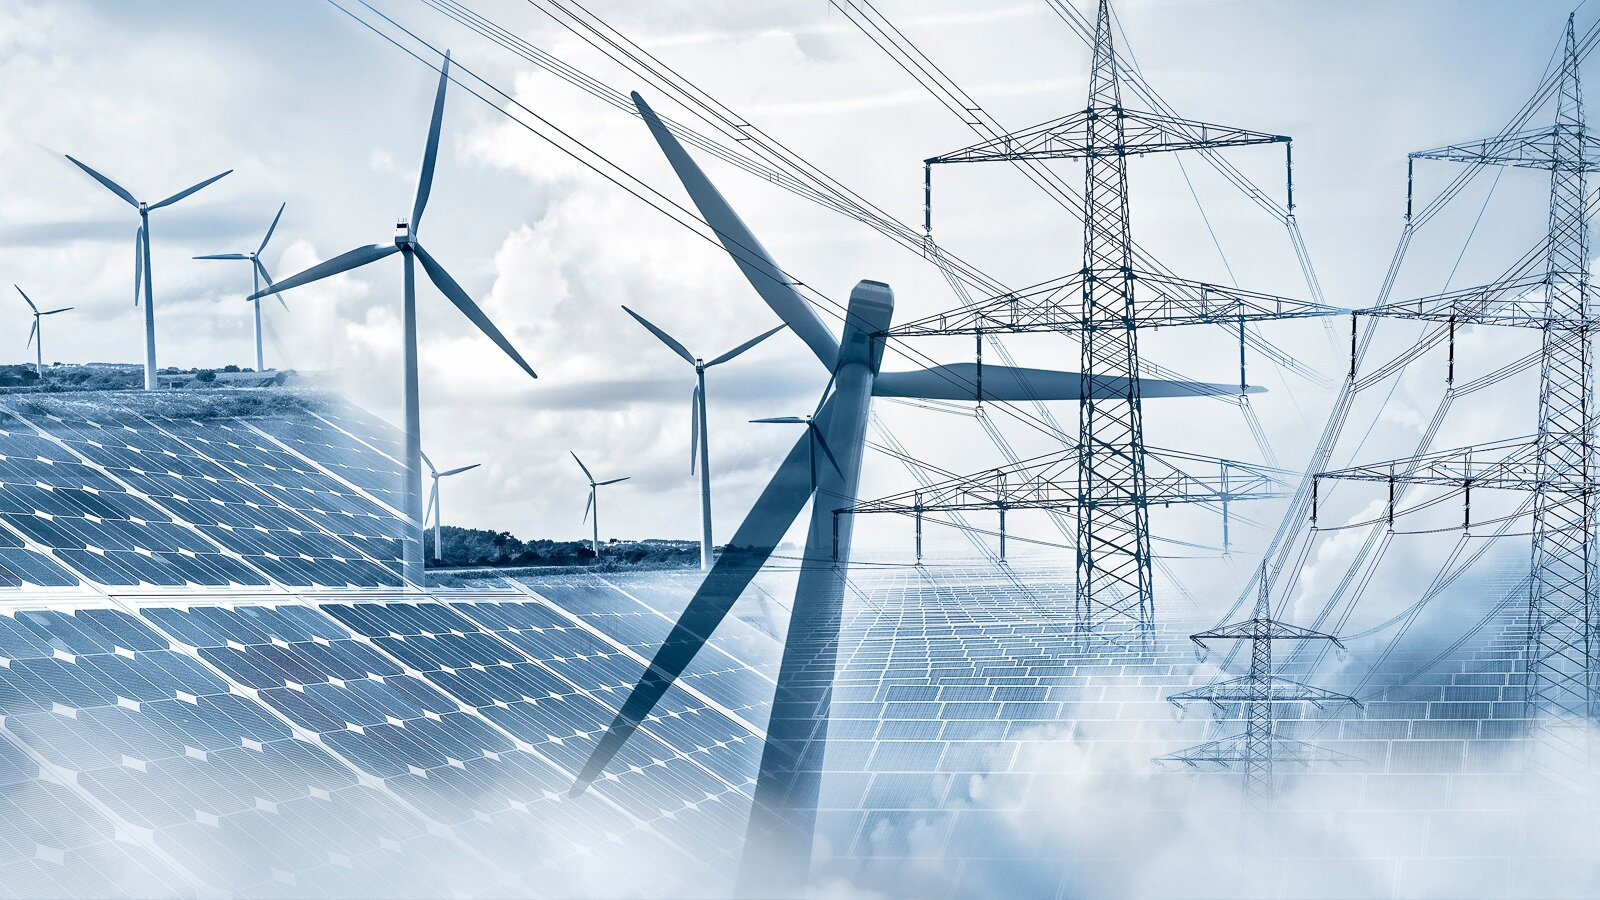 Scientists Use Artificial Intelligence in New Way to Strengthen Power Grid Resiliency